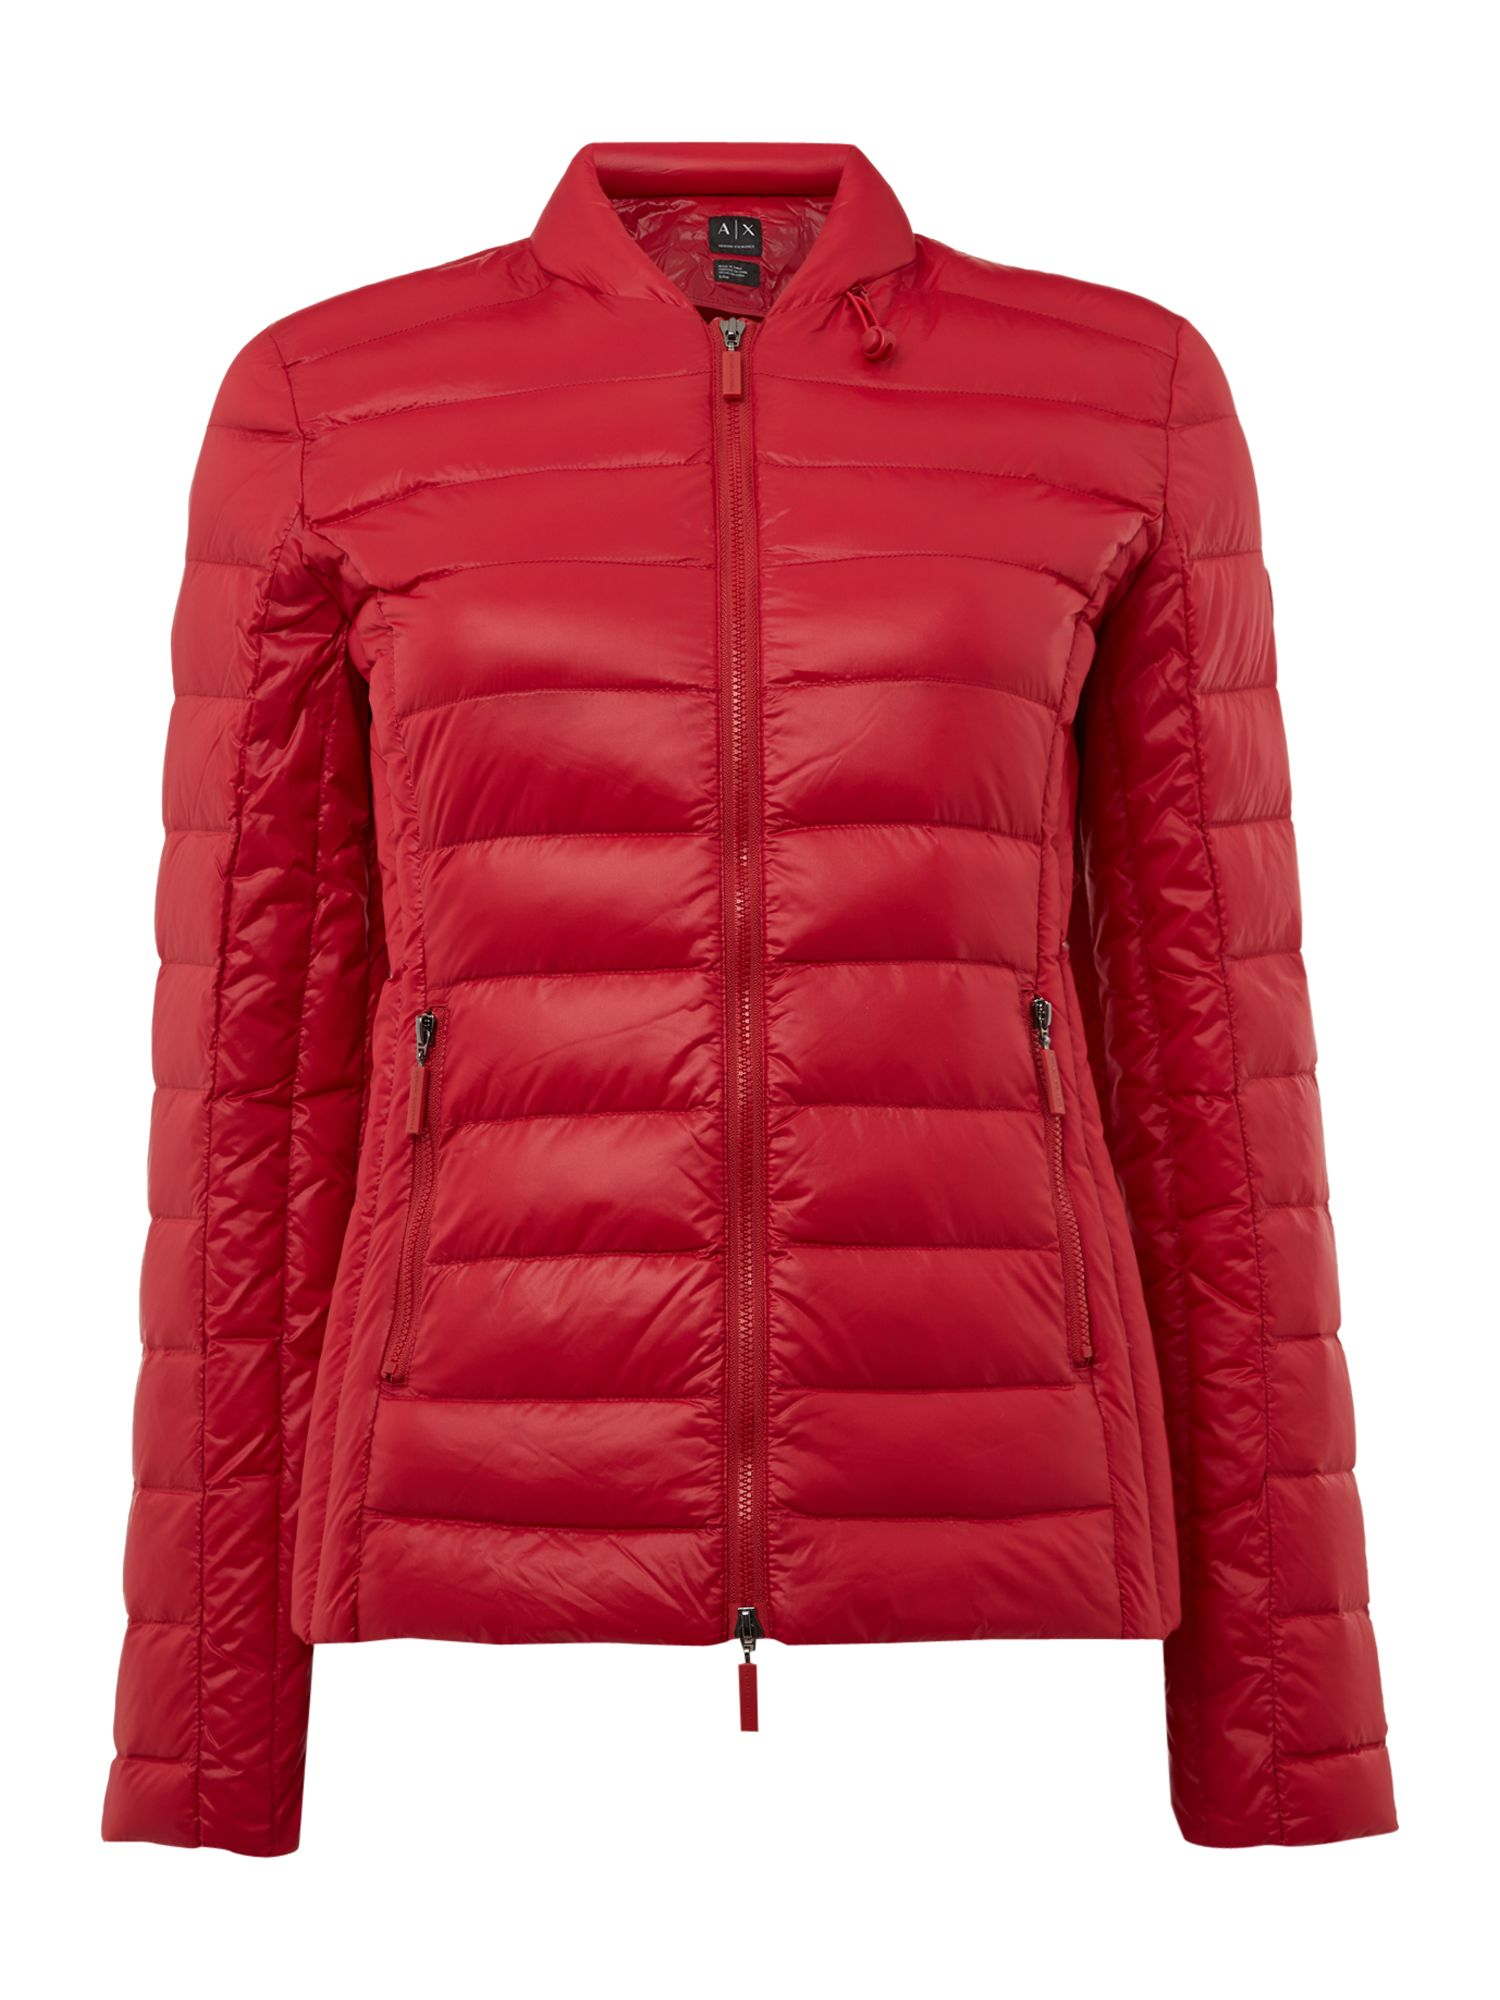 Armani Exchange Light Weight Jacket in royal Red, Red